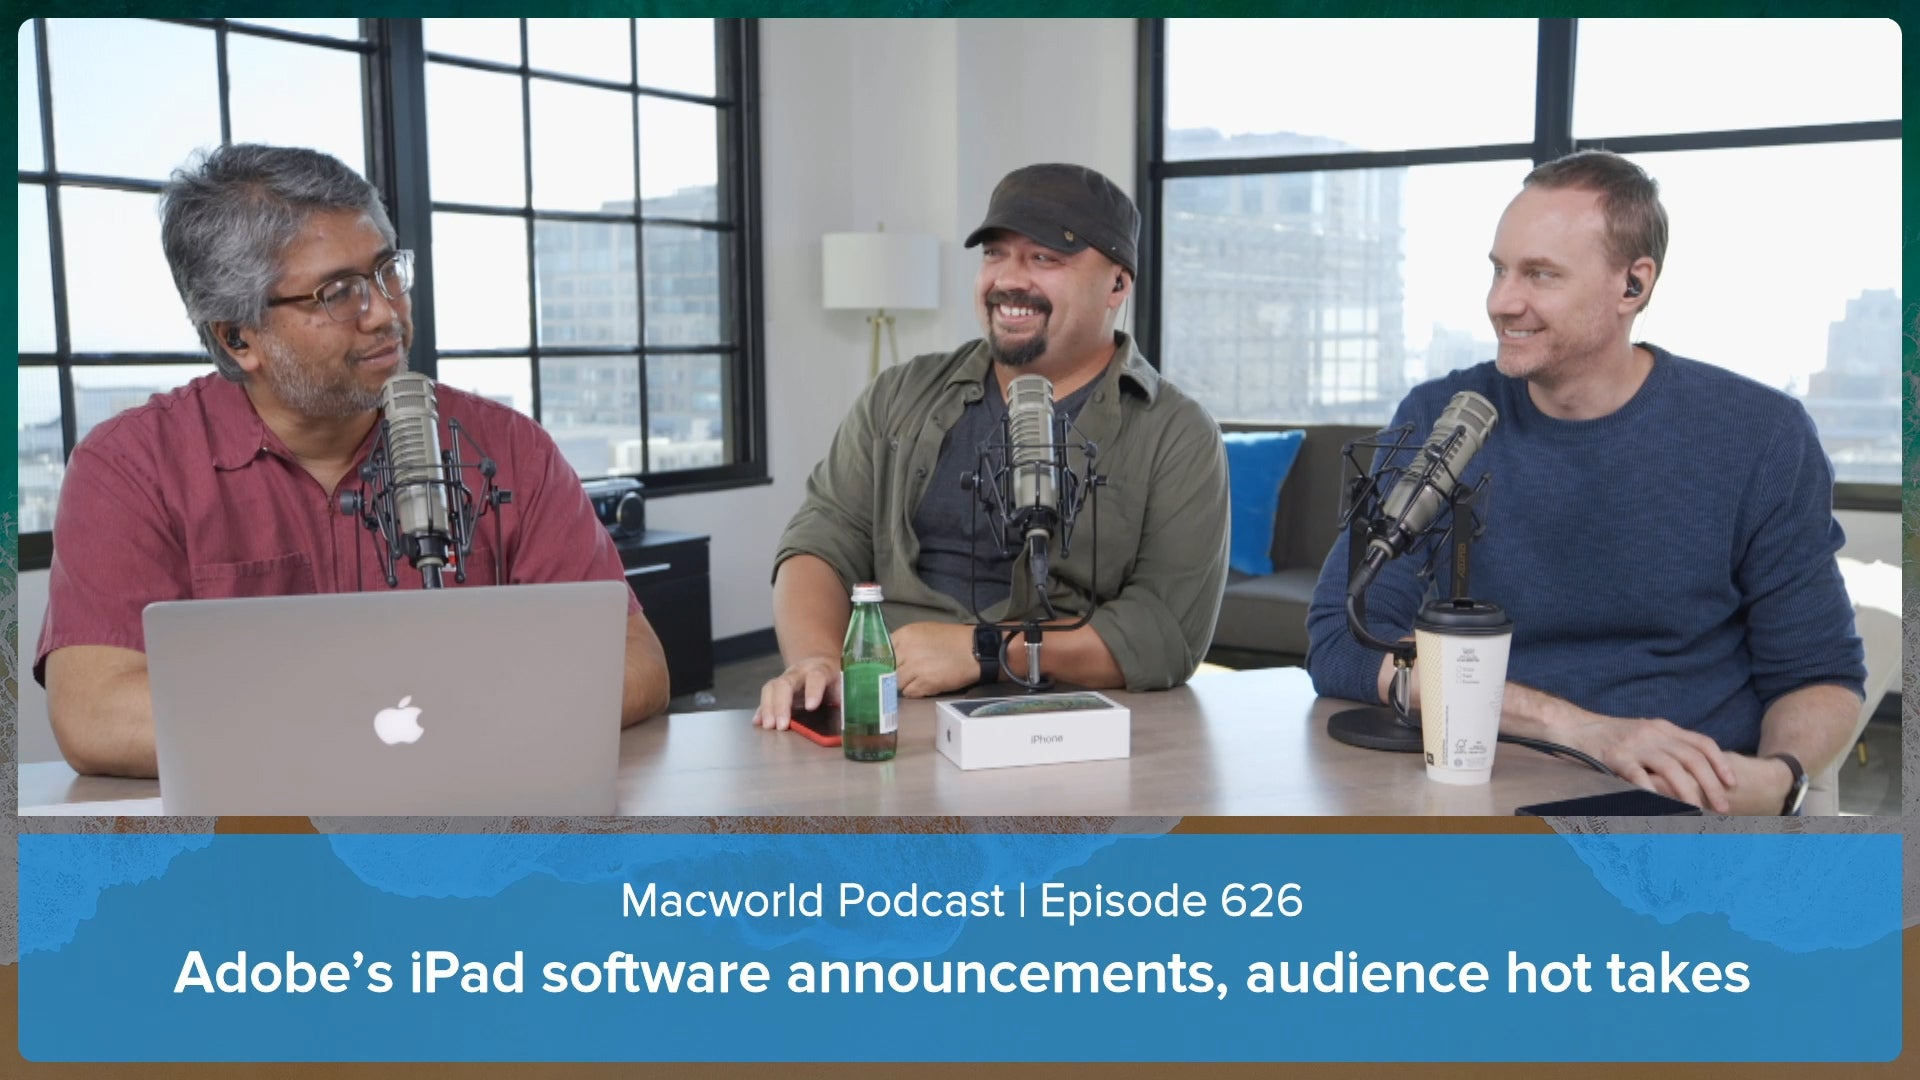 Macworld Podcast 626